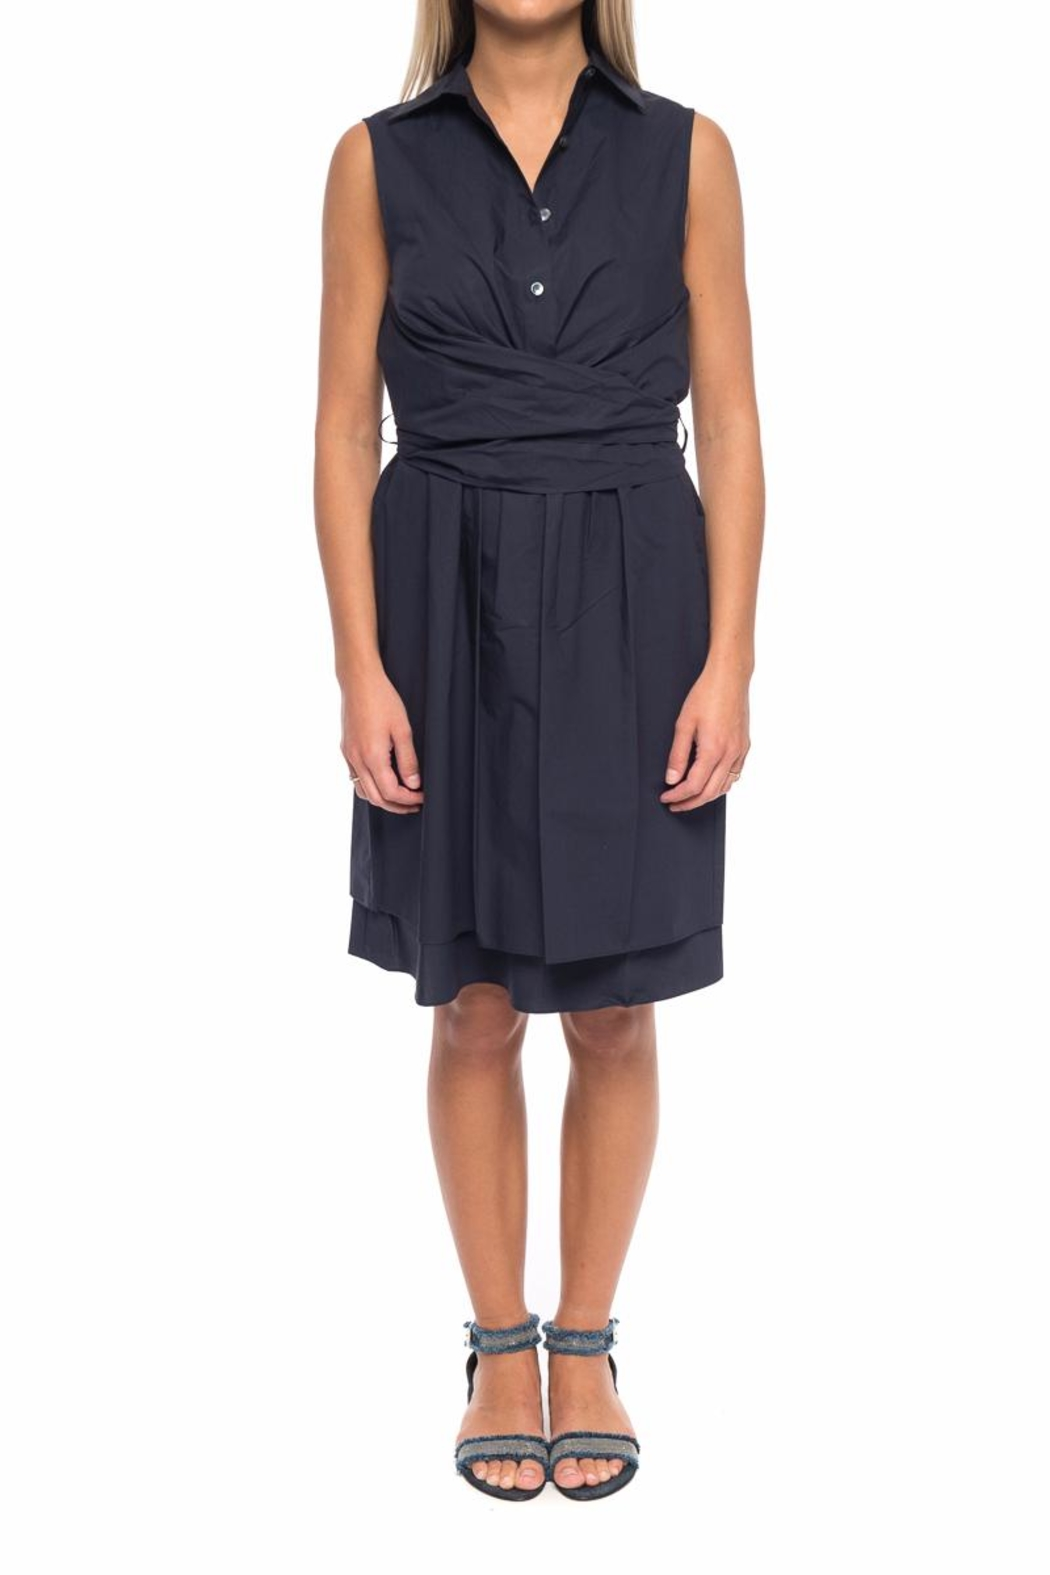 848aaae8901667 Derek Lam 10 Crosby Poplin Shirt Dress from New Jersey by Hartly ...